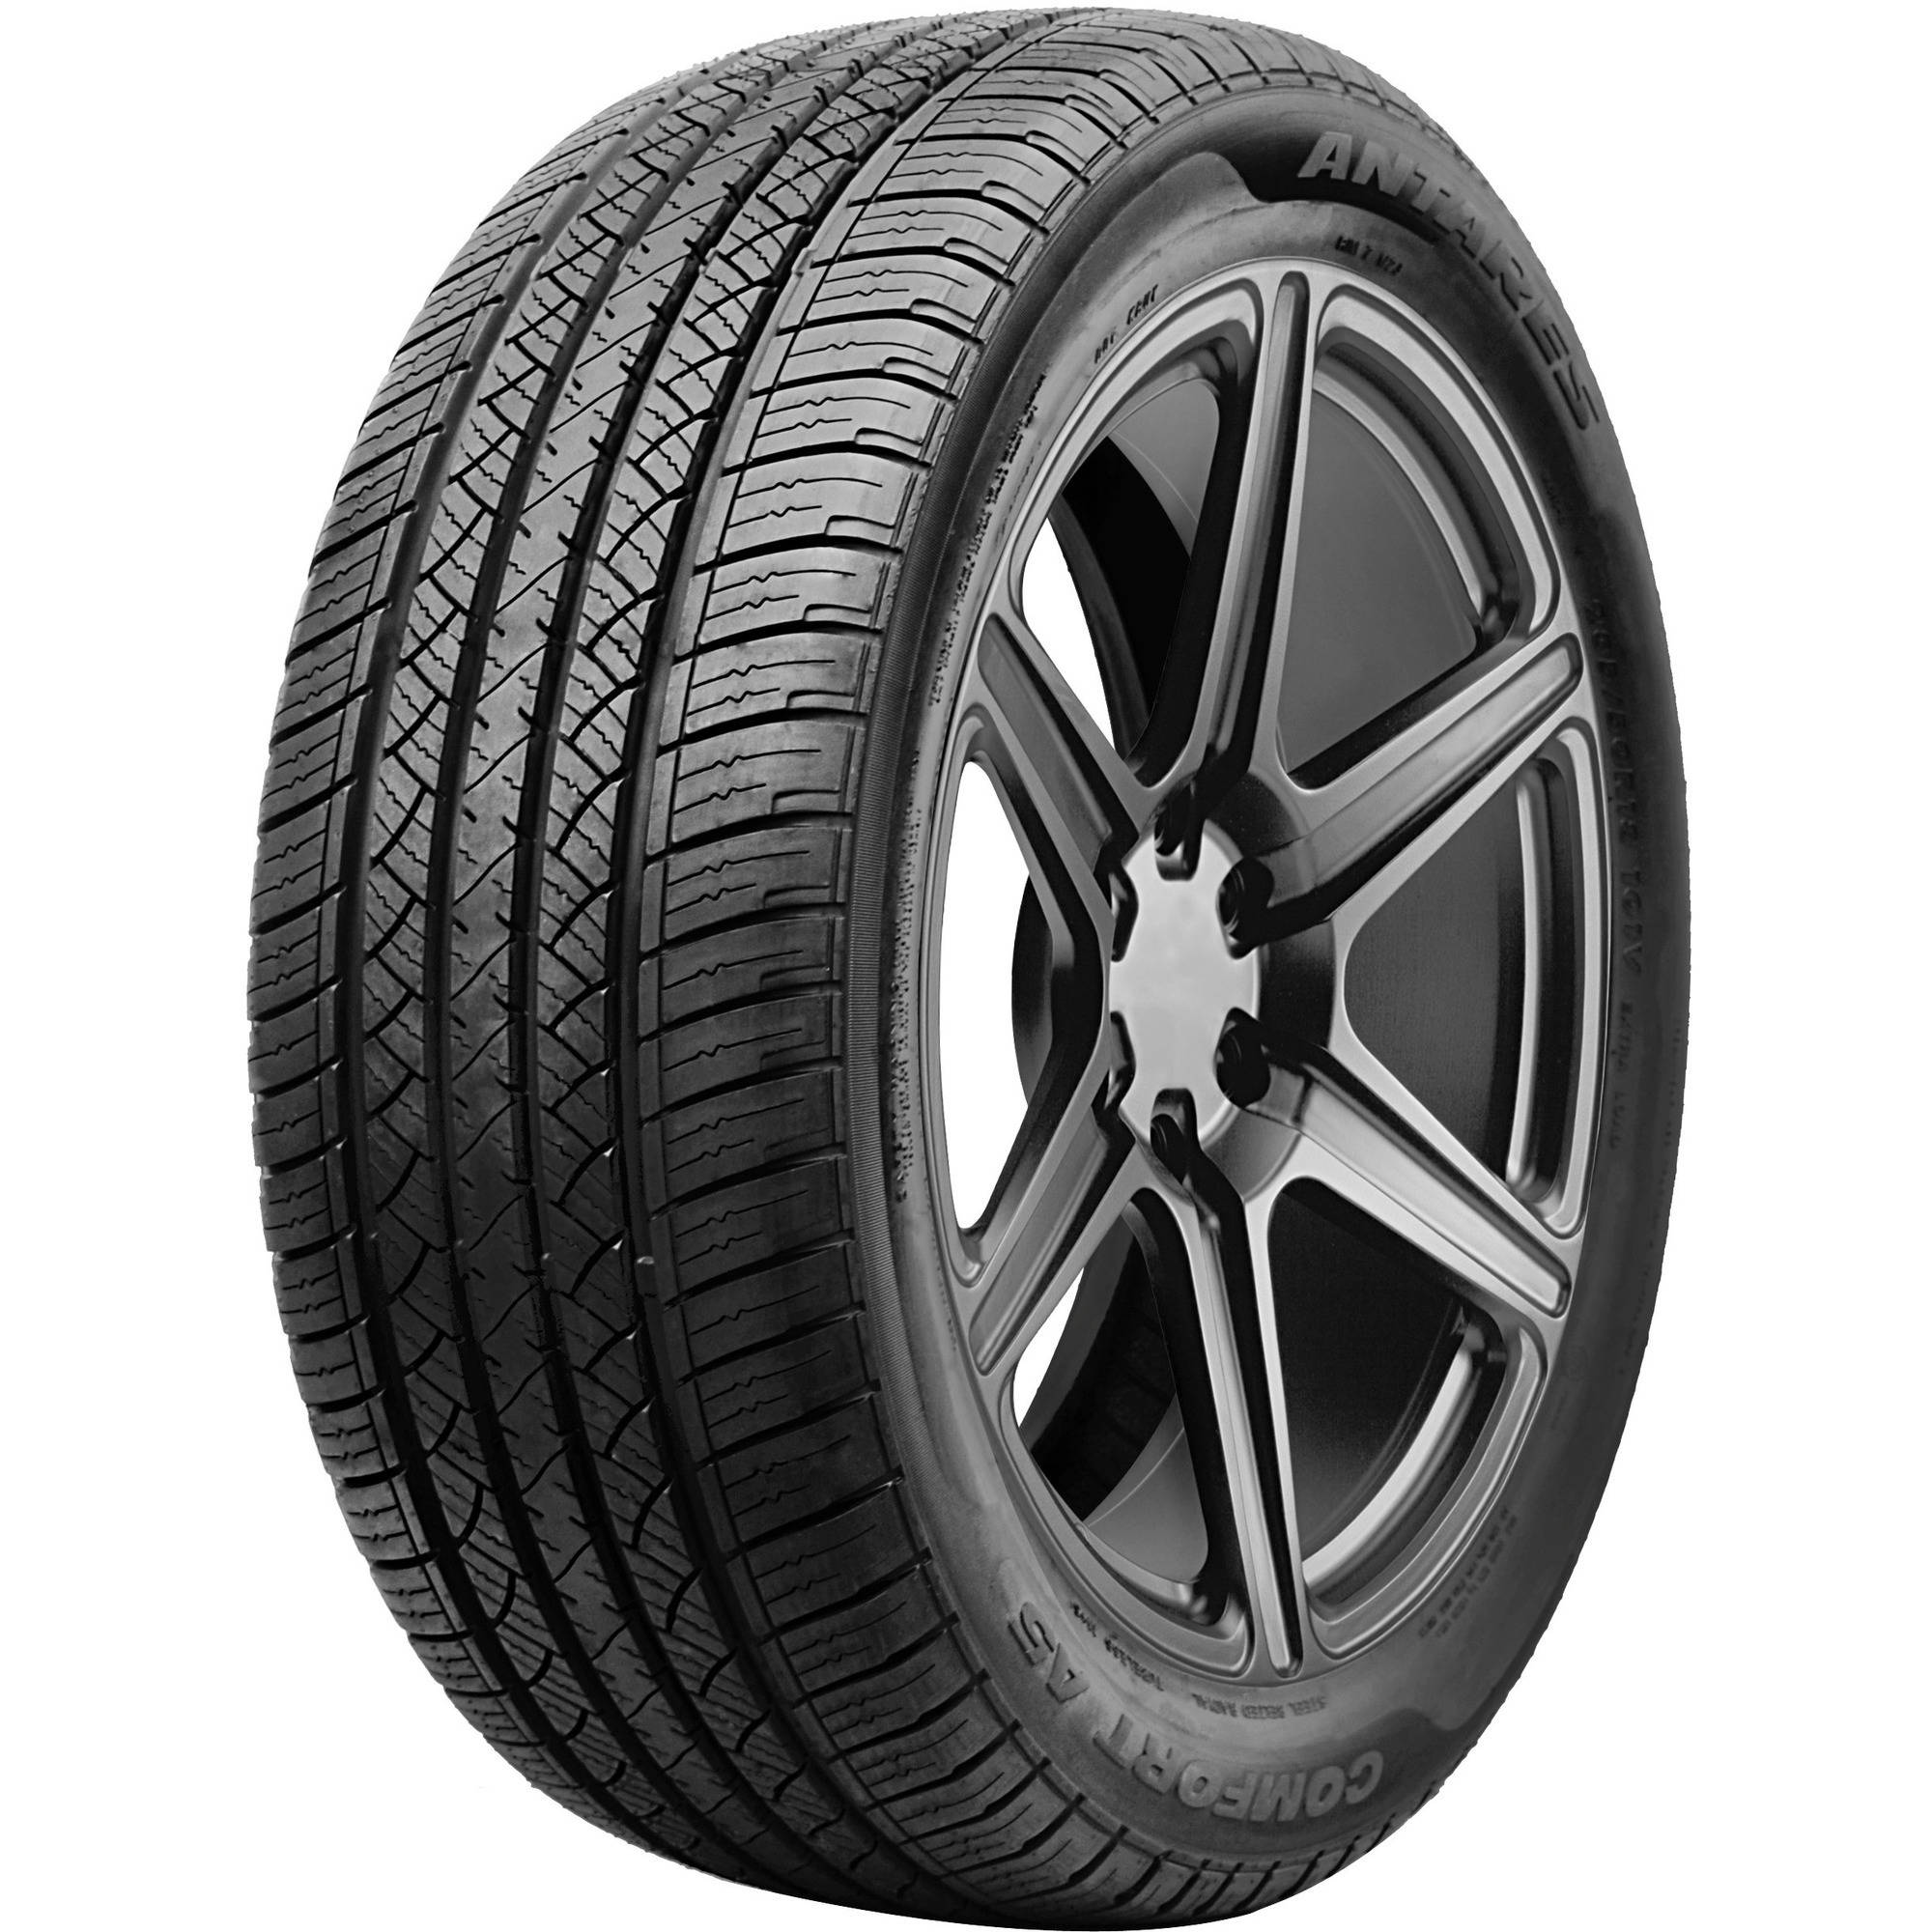 Antares Comfort A5 235 55R18 100V Tire by Antares